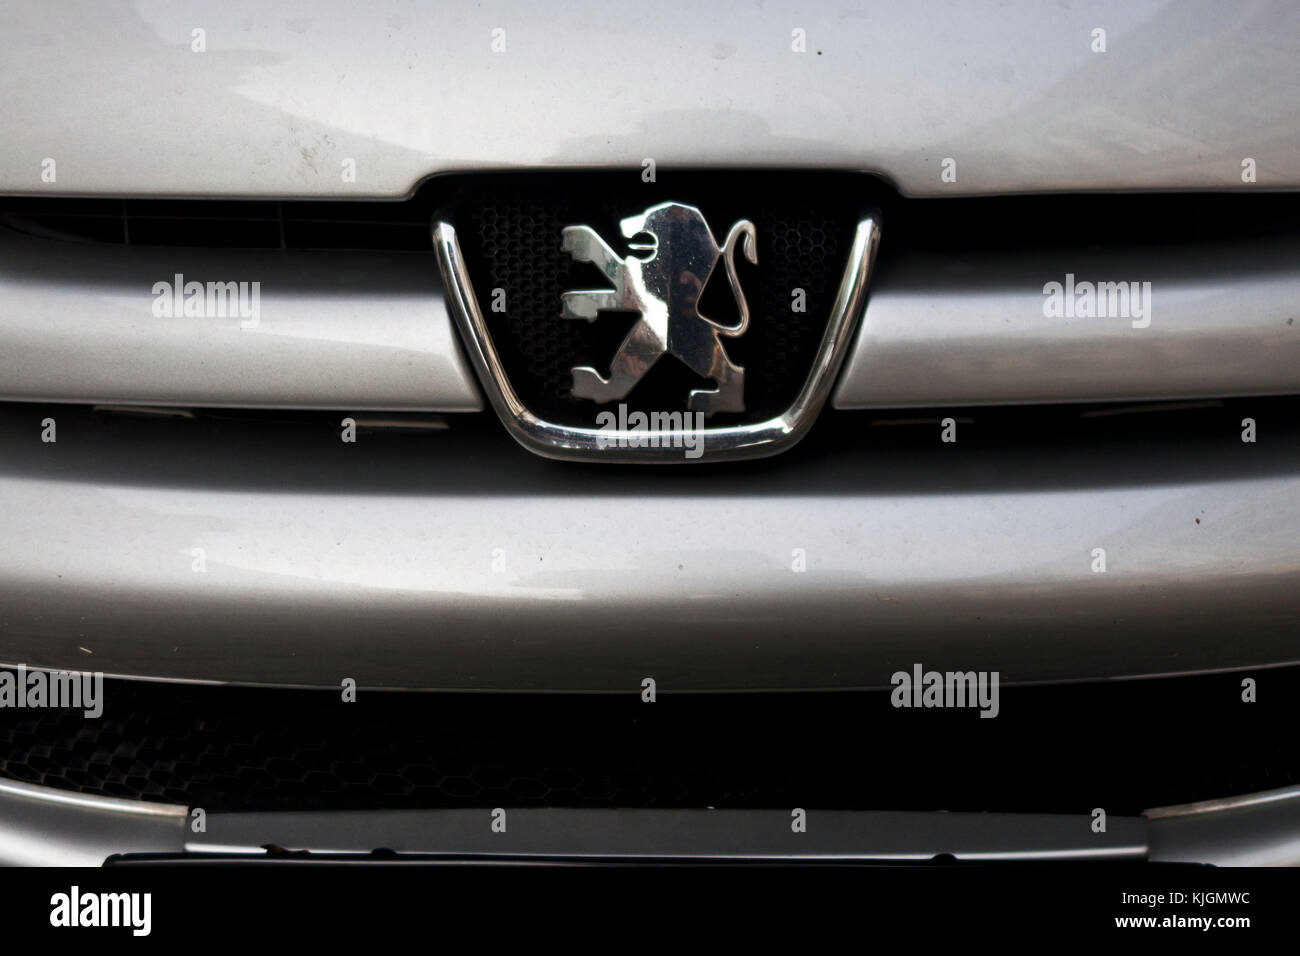 Peugeot logo on a car grille - Stock Image